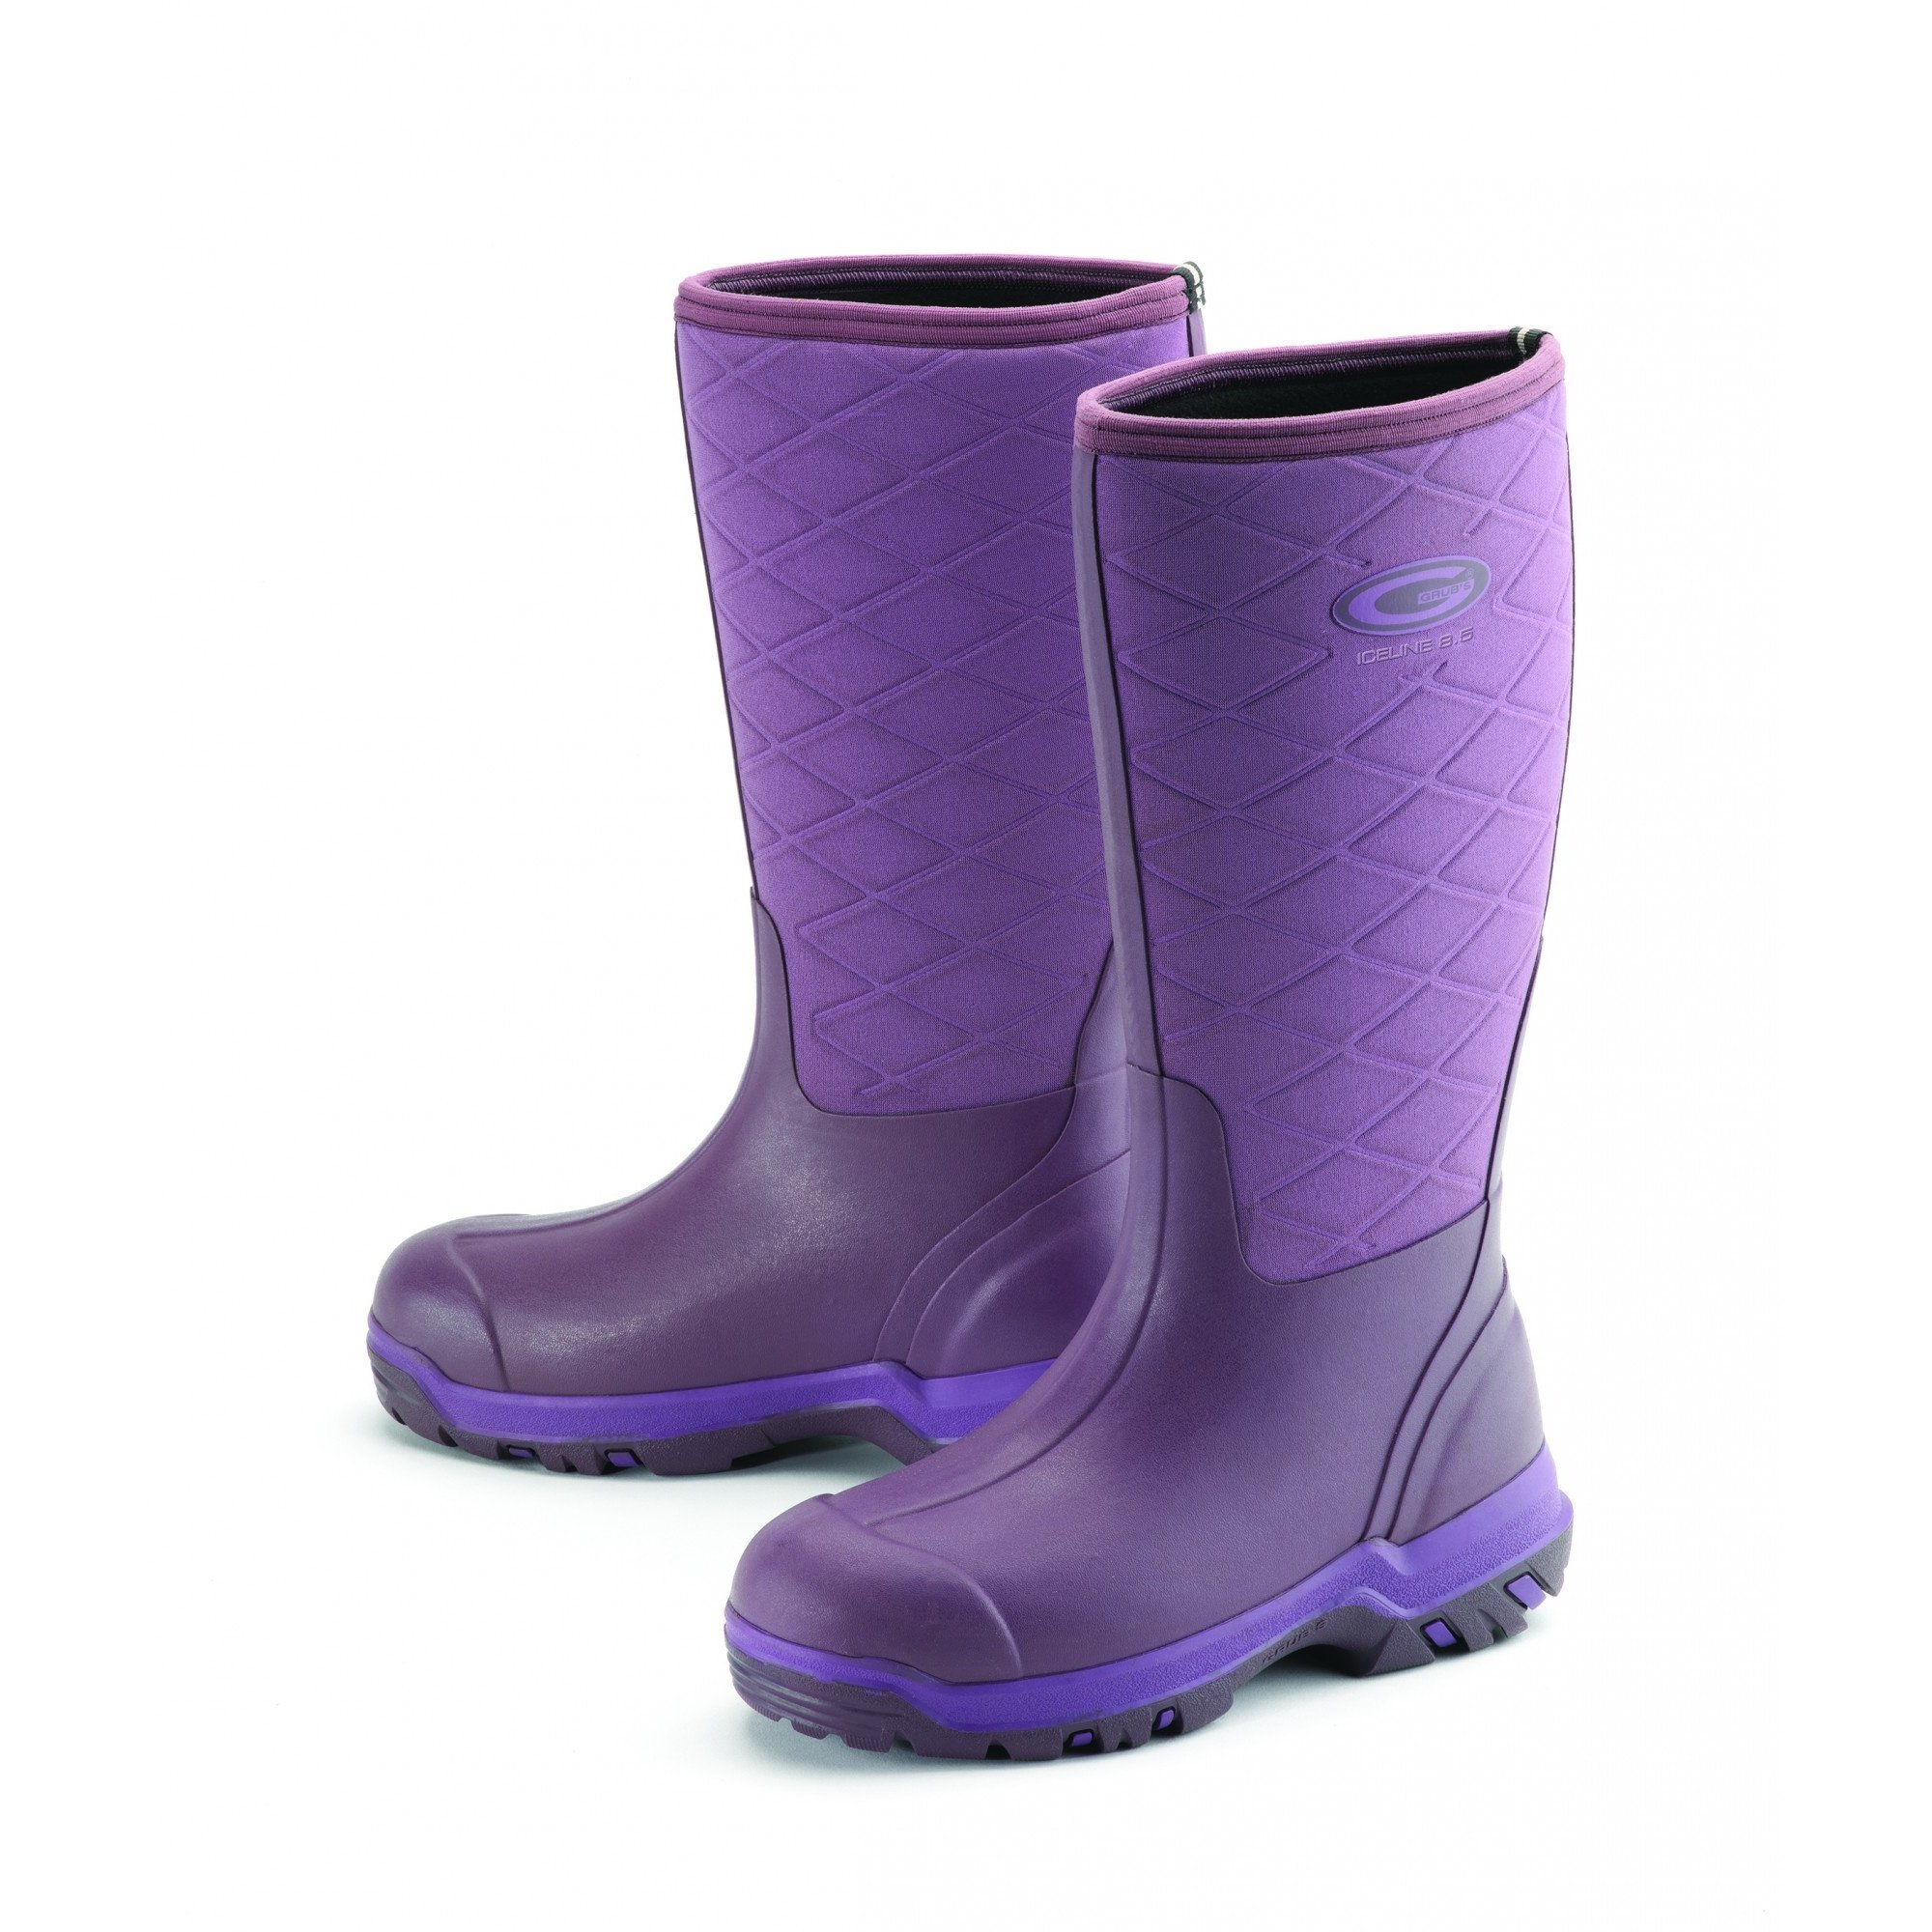 Grubs Womens/Ladies Iceline Boots (7 US) (Heather) by Grubs Boots